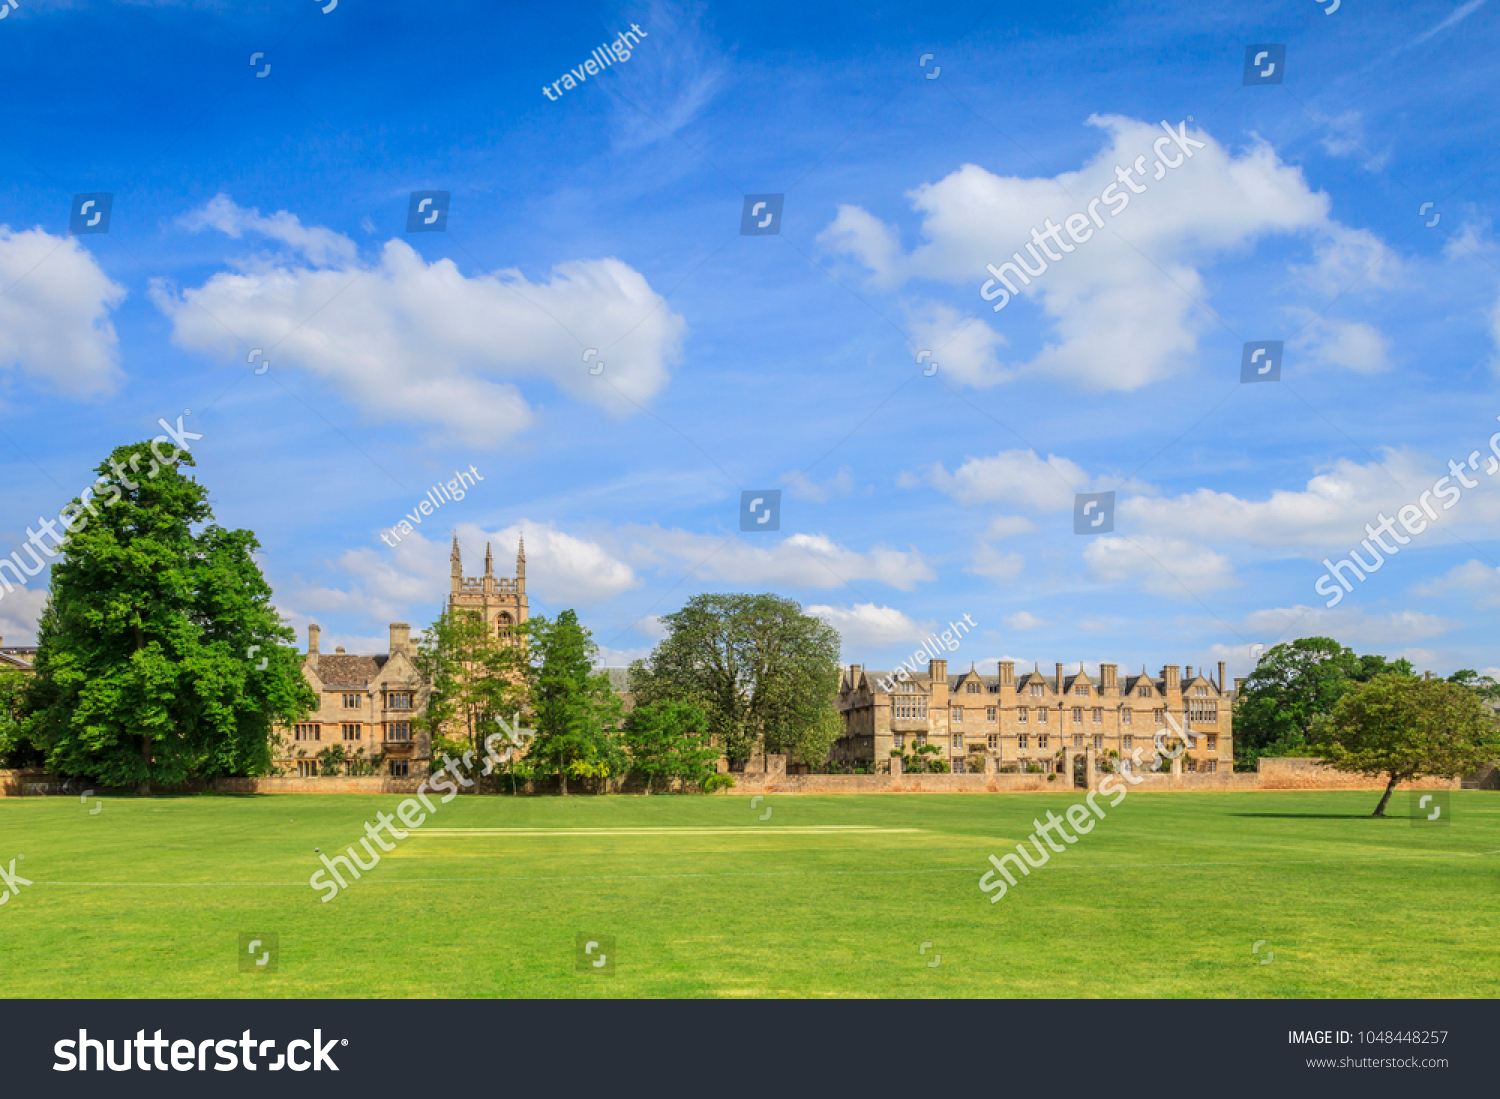 University dating oxford An Introduction